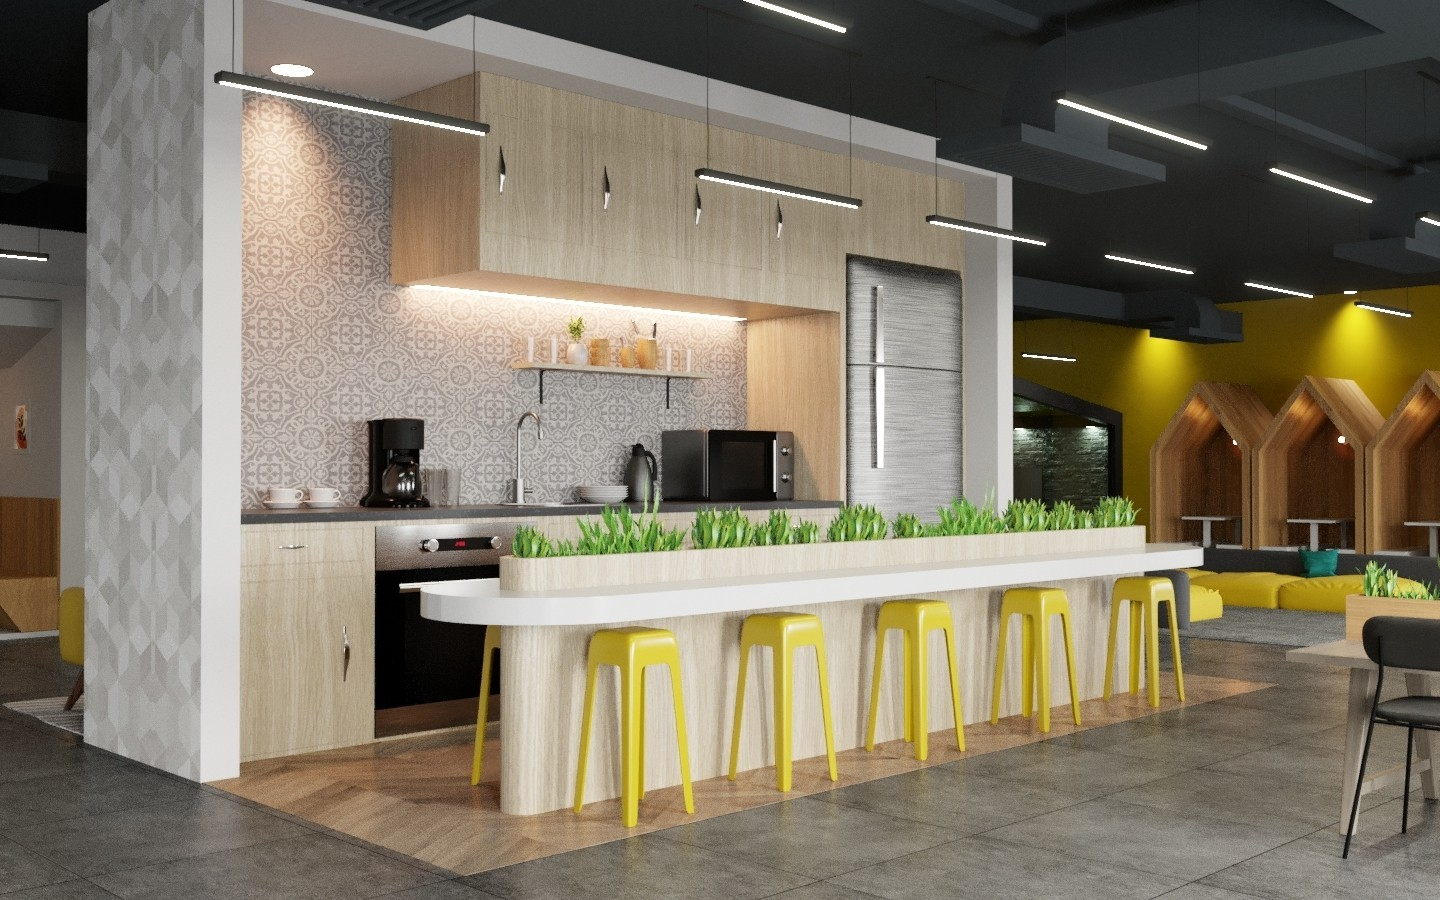 Purchase 3D Coworking Workspace Interior Design For A Low Price